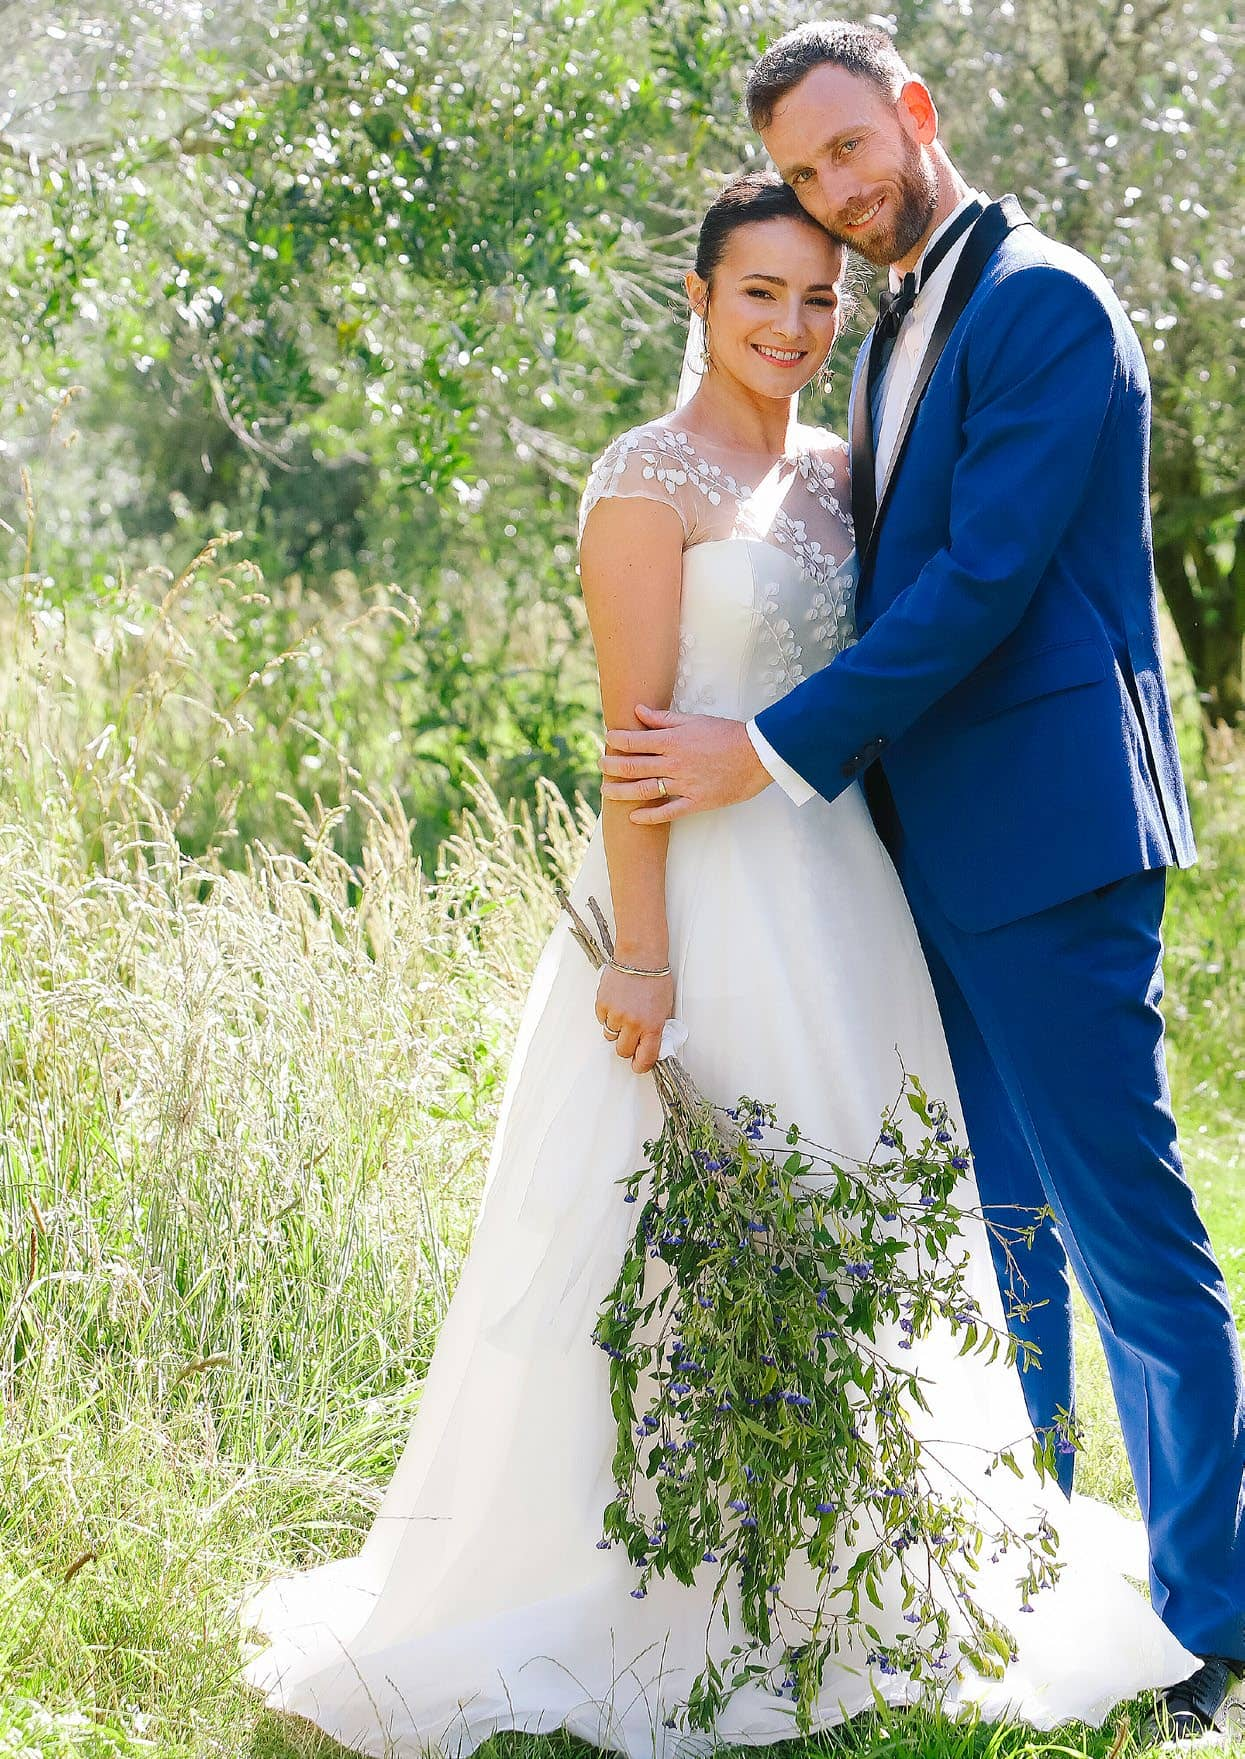 Whirlwind ceremony: LOVE-ALL FOR TENNIS STAR MICHAEL VENUS